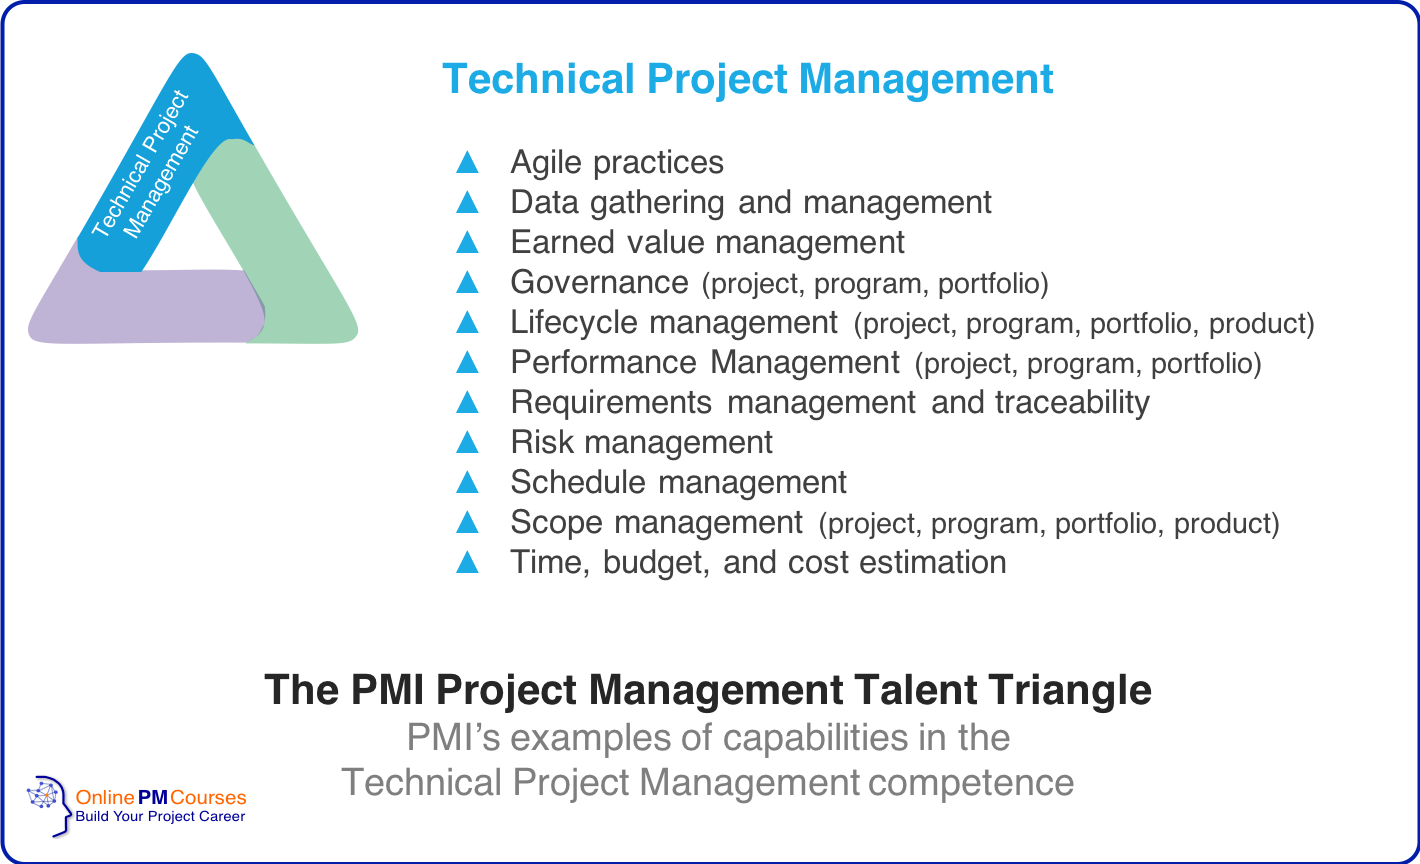 The PMI Project Management Talent Triangle - Technical Project Management